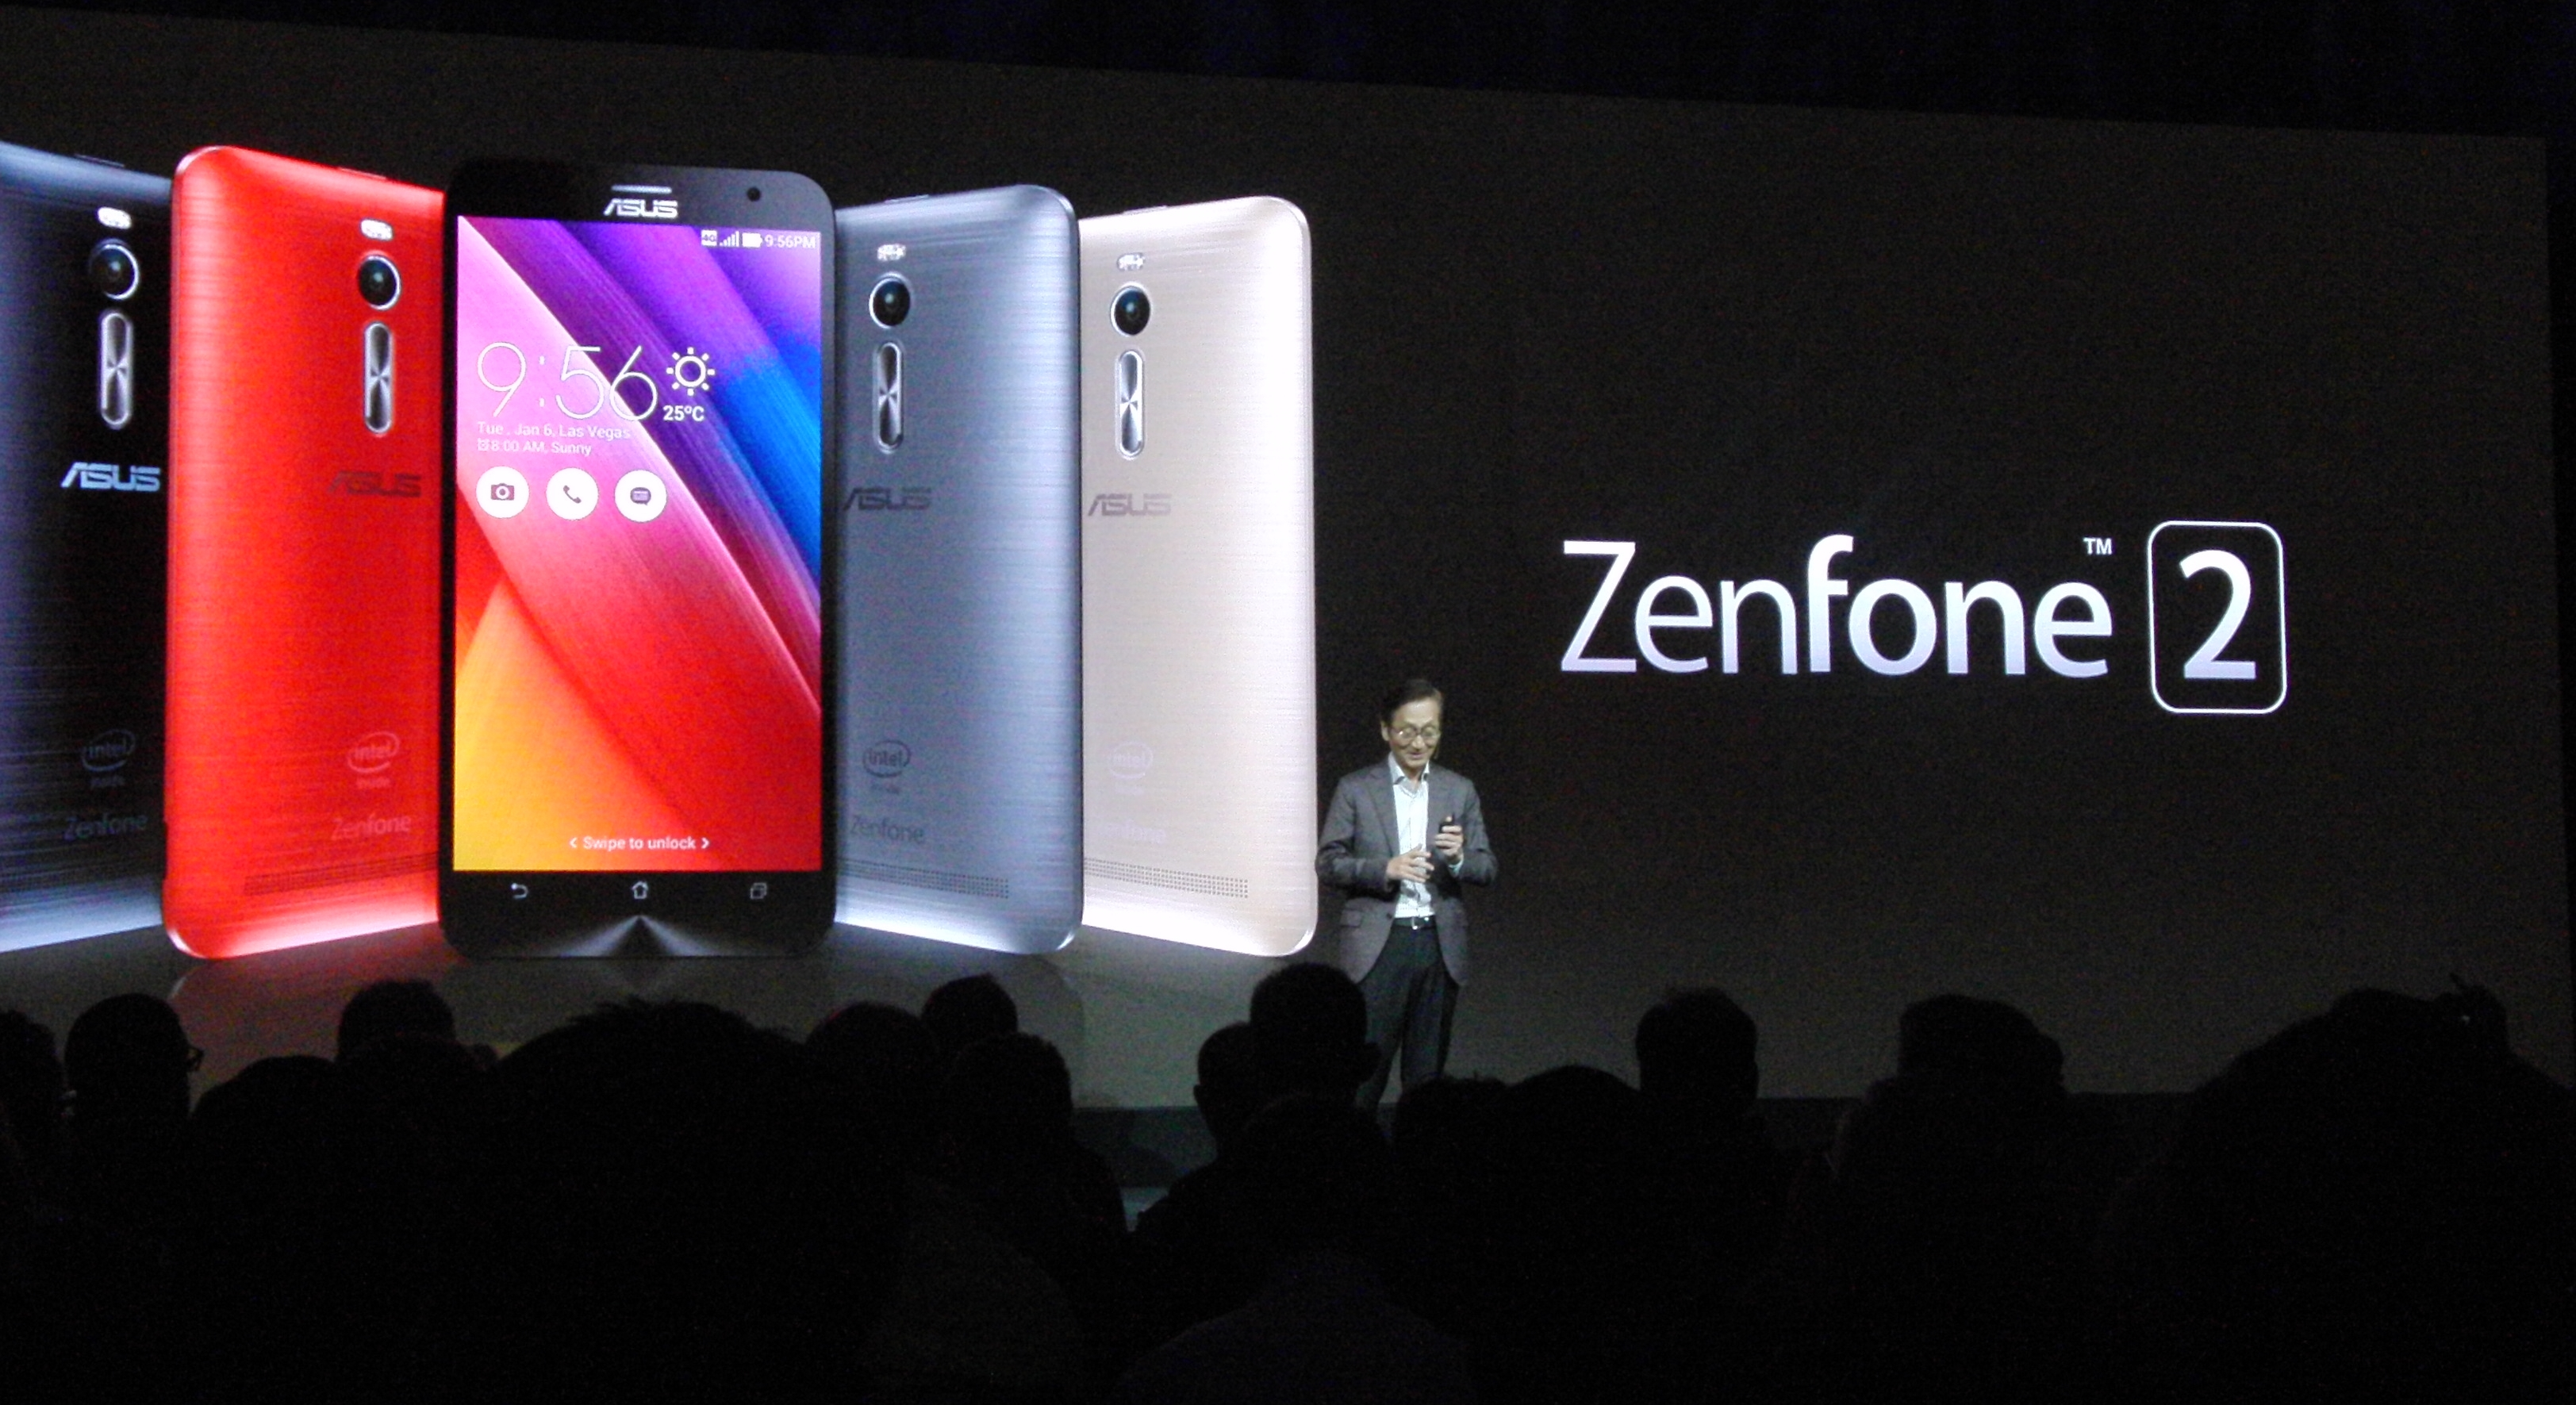 ASUS Chairman Jonney Shih introduces Zenfone 2 to New York media